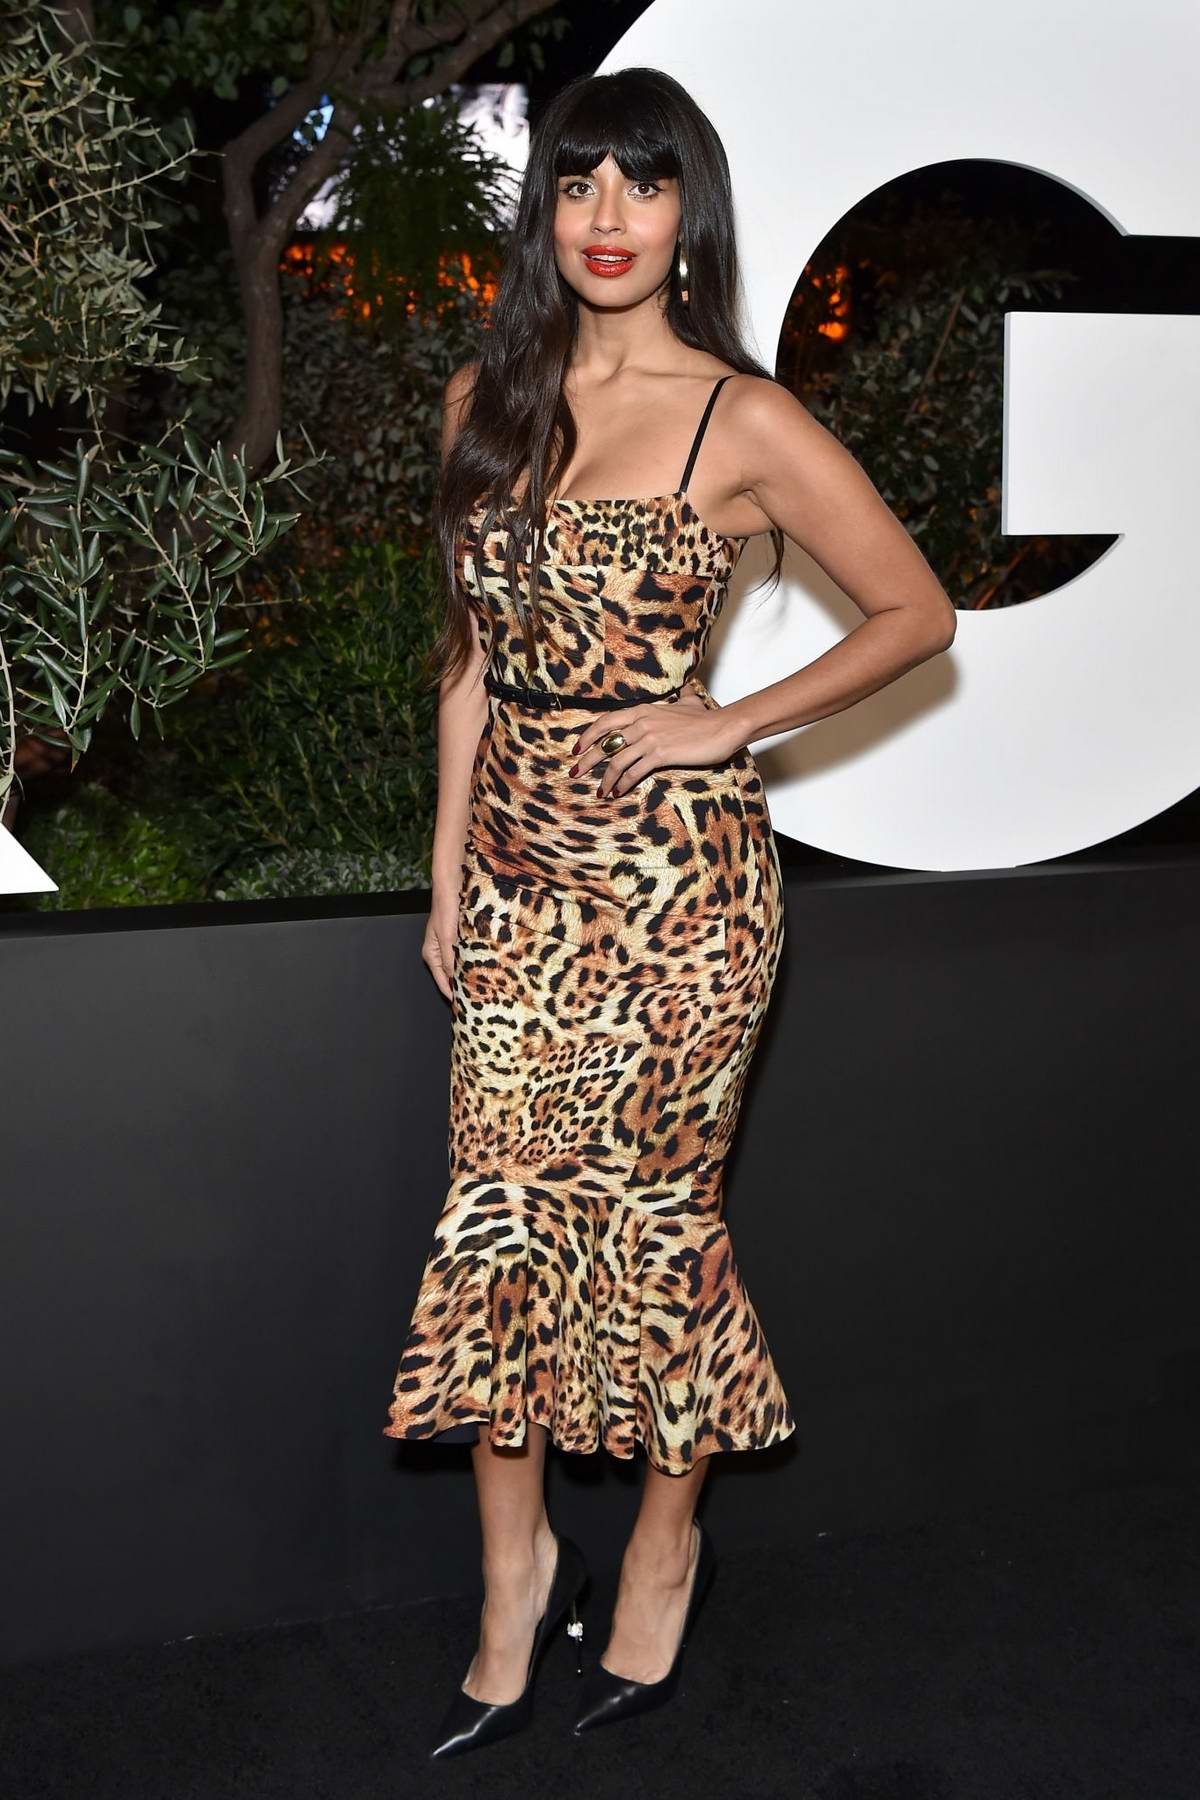 Jameela Jamil attends the 2019 GQ Men of the Year at The West Hollywood Edition in West Hollywood, Los Angeles